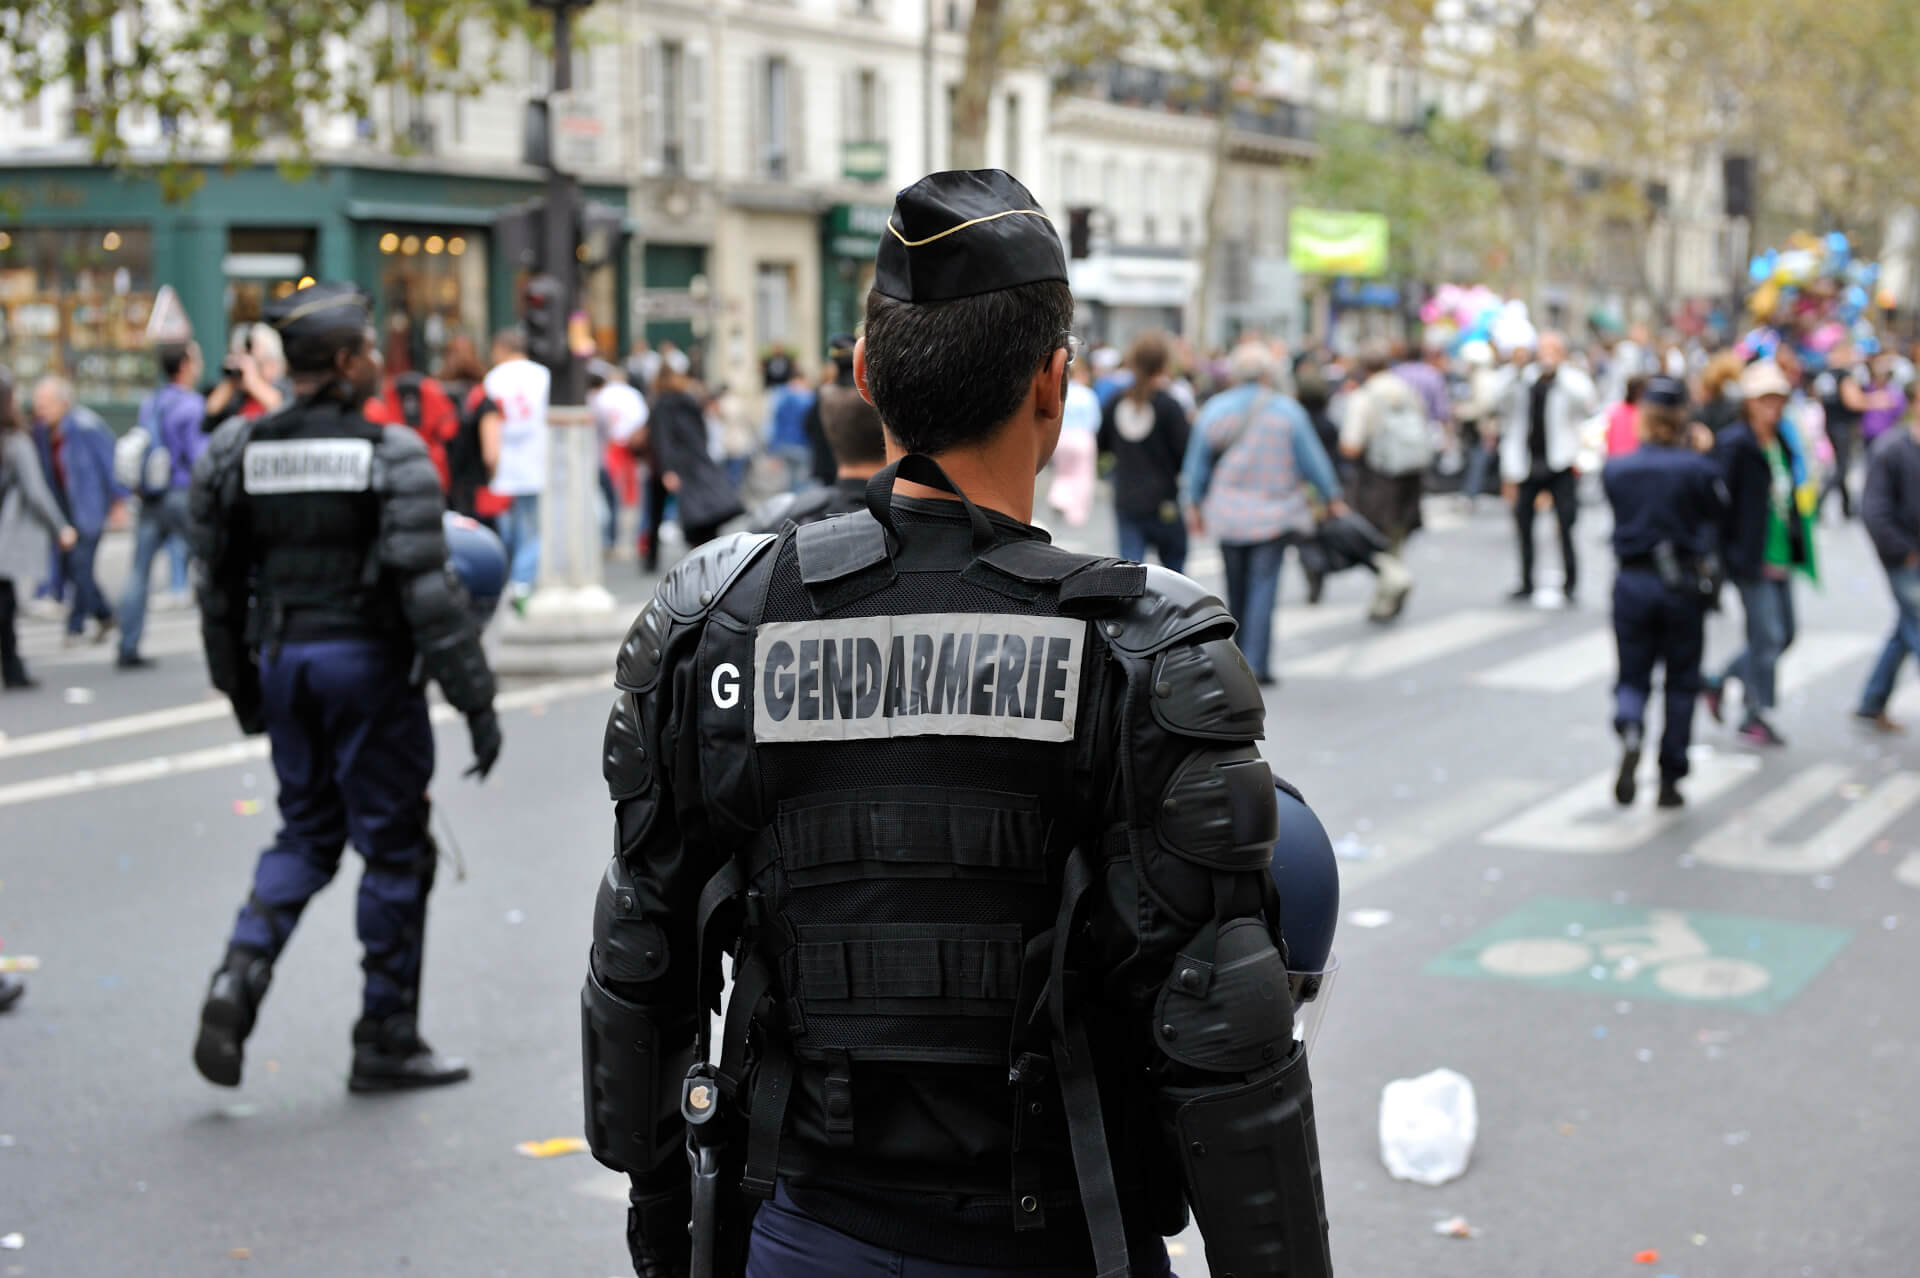 Gendarmerie in Paris